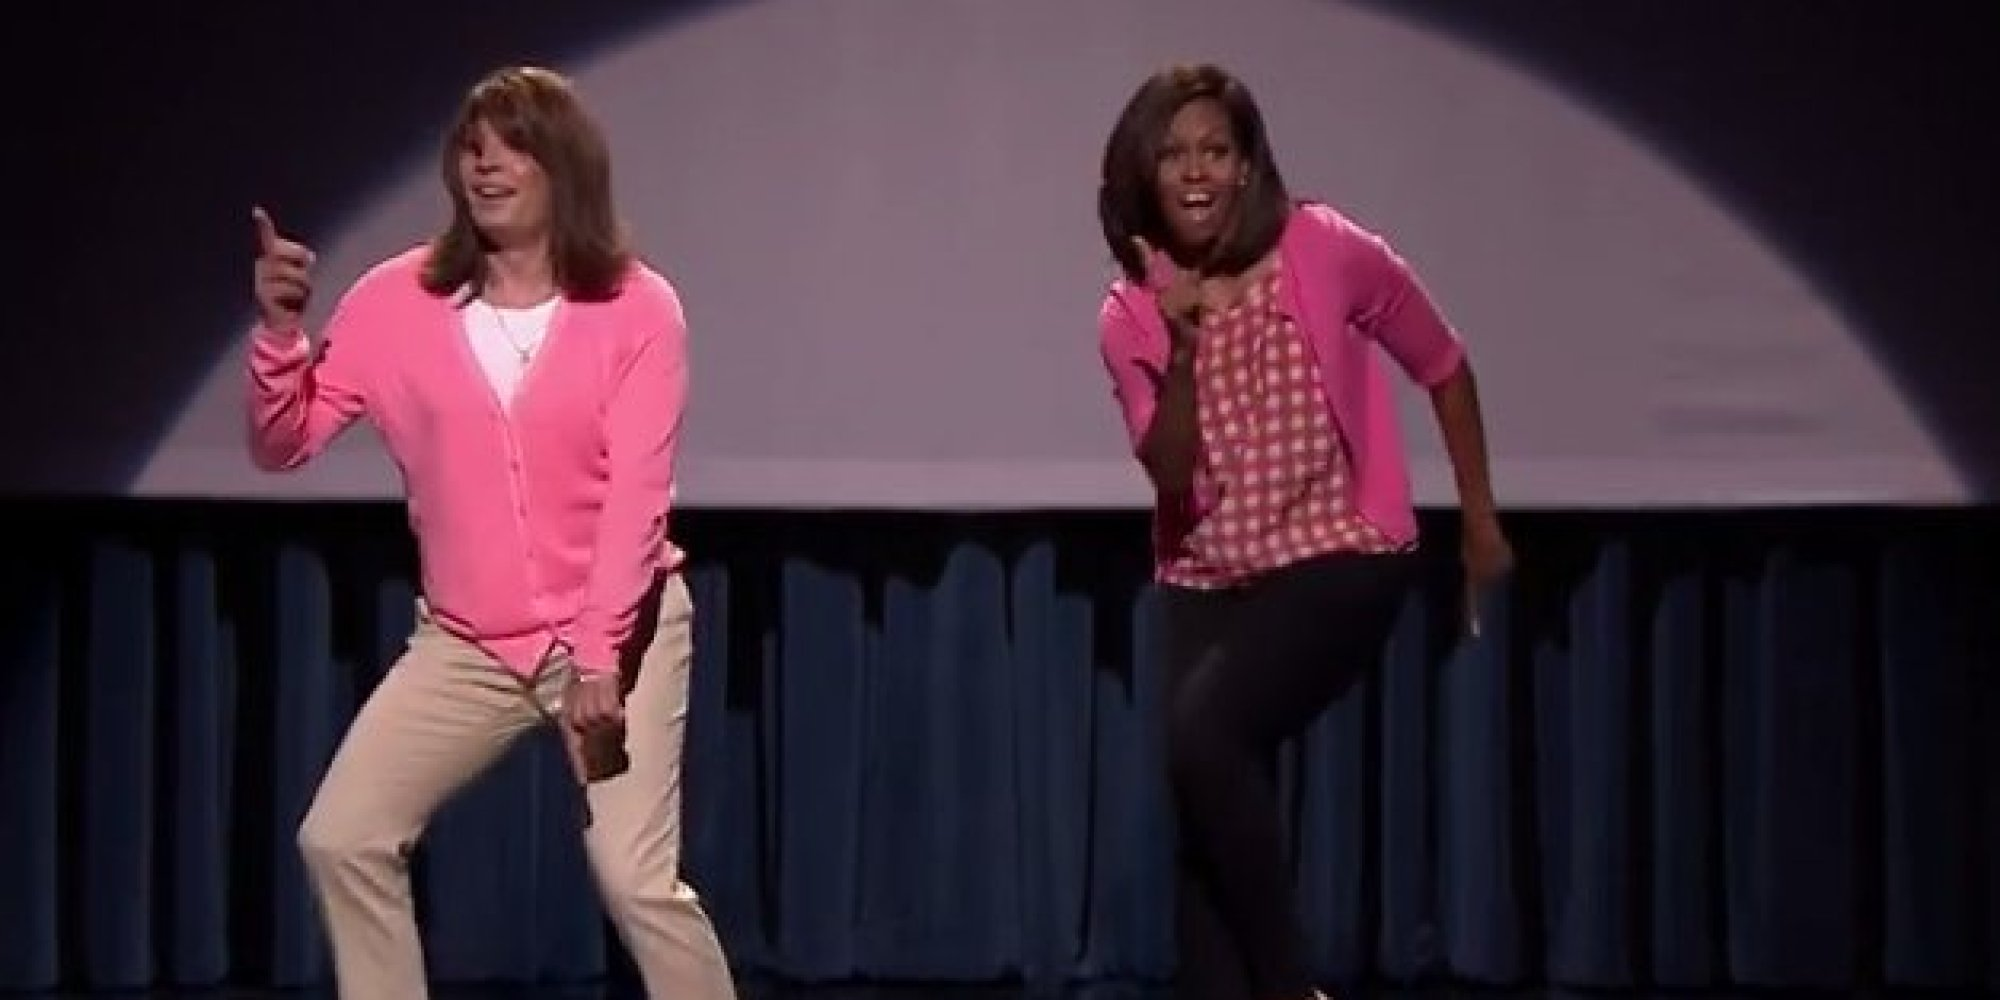 Michelle Obama And Jimmy Fallon Just Took Their Mom Dance Moves To The ...